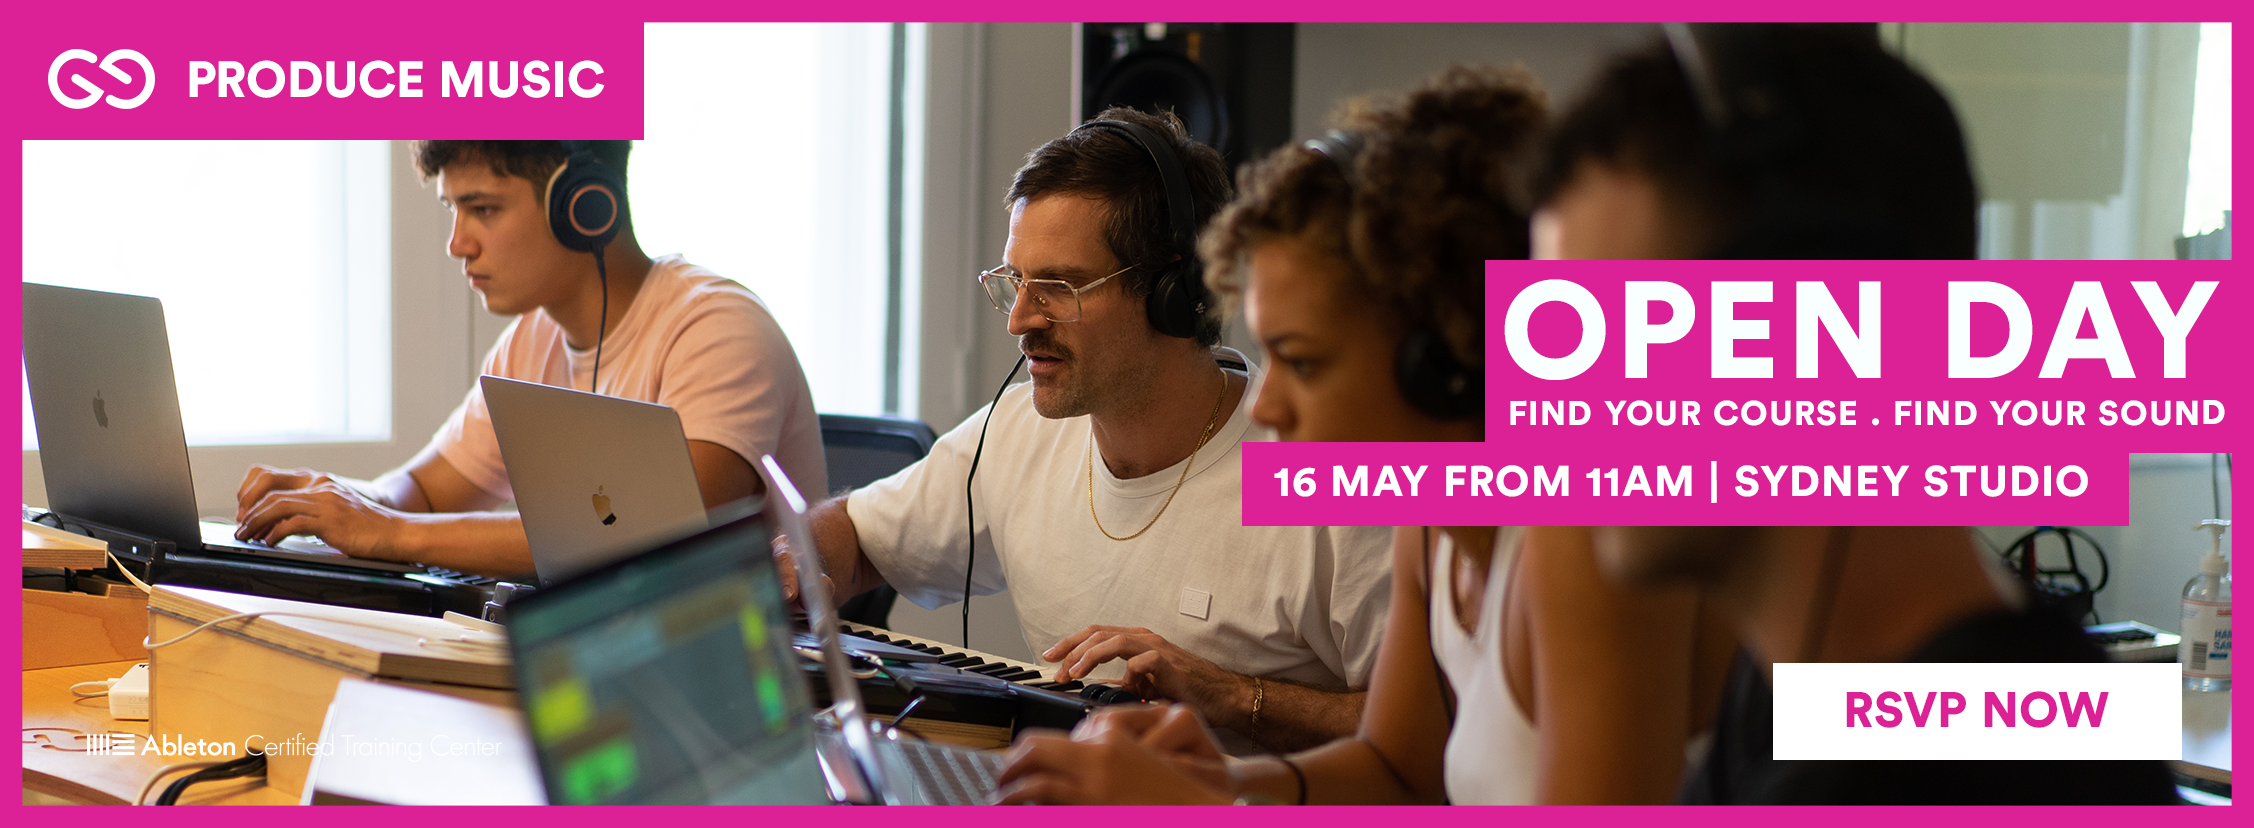 Liveschool Open Day 16 May 2021